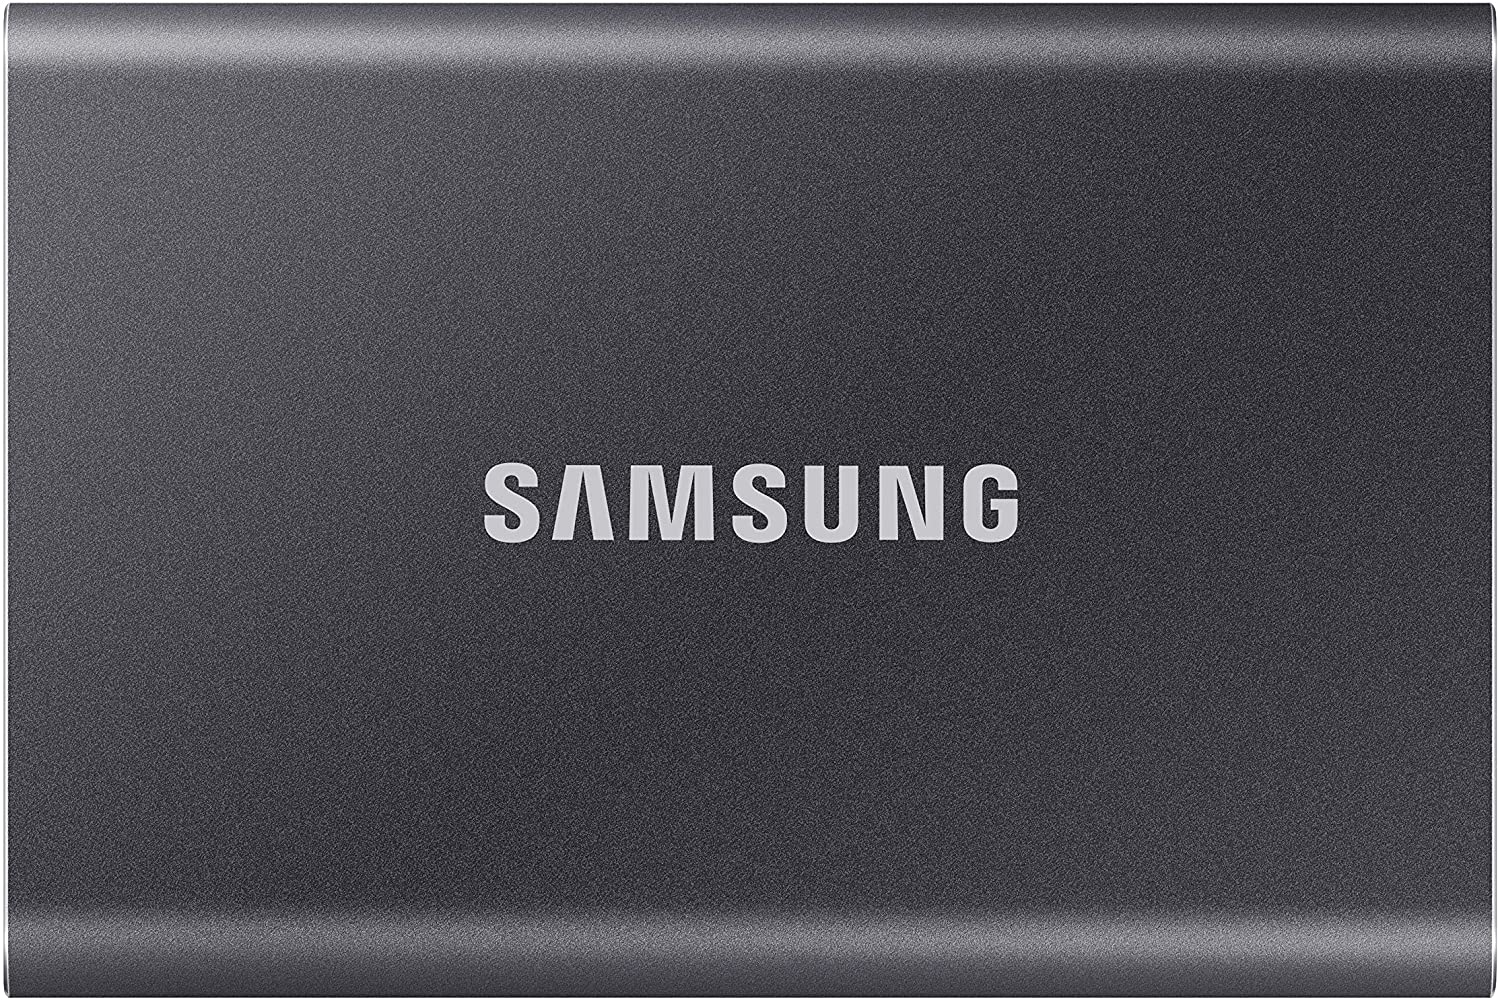 SAMSUNG T7 Portable SSD 1TB - Up to 1050MB/s - USB 3.2 External Solid State Drive, Gray (MU-PC1T0T/AM) $149.99